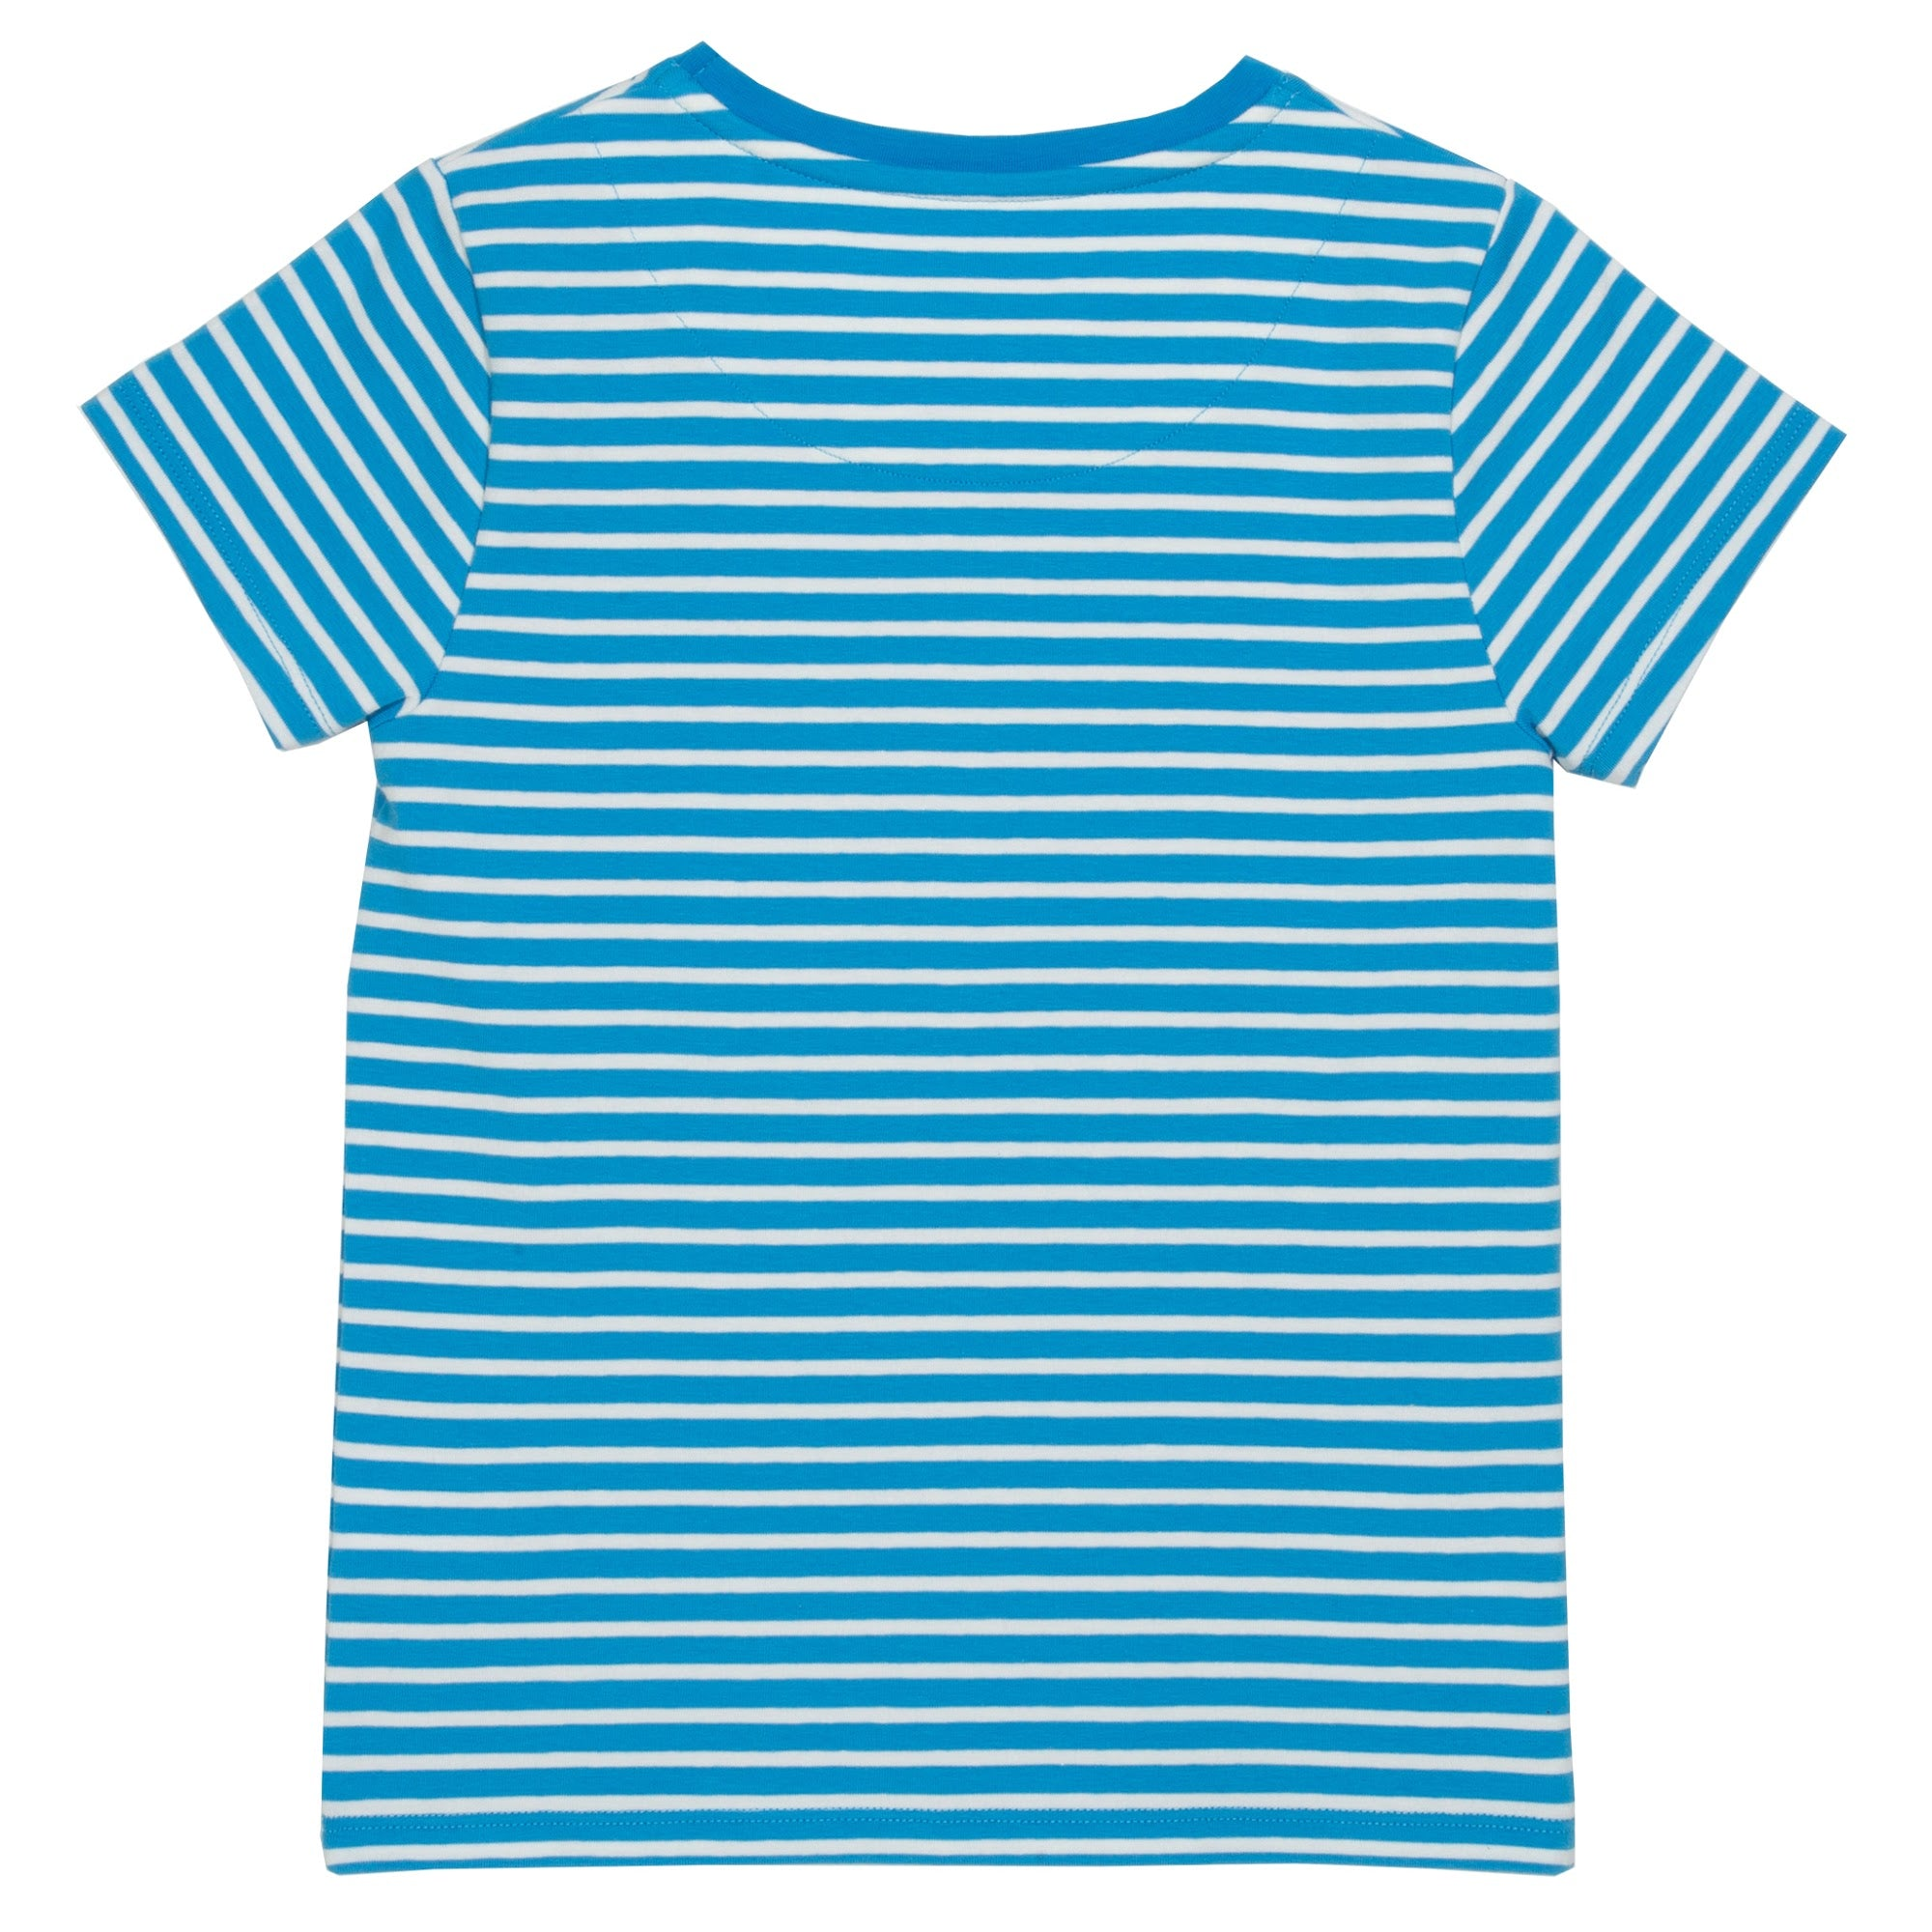 Kite Daisy Stripe Anchor T-Shirt SALE